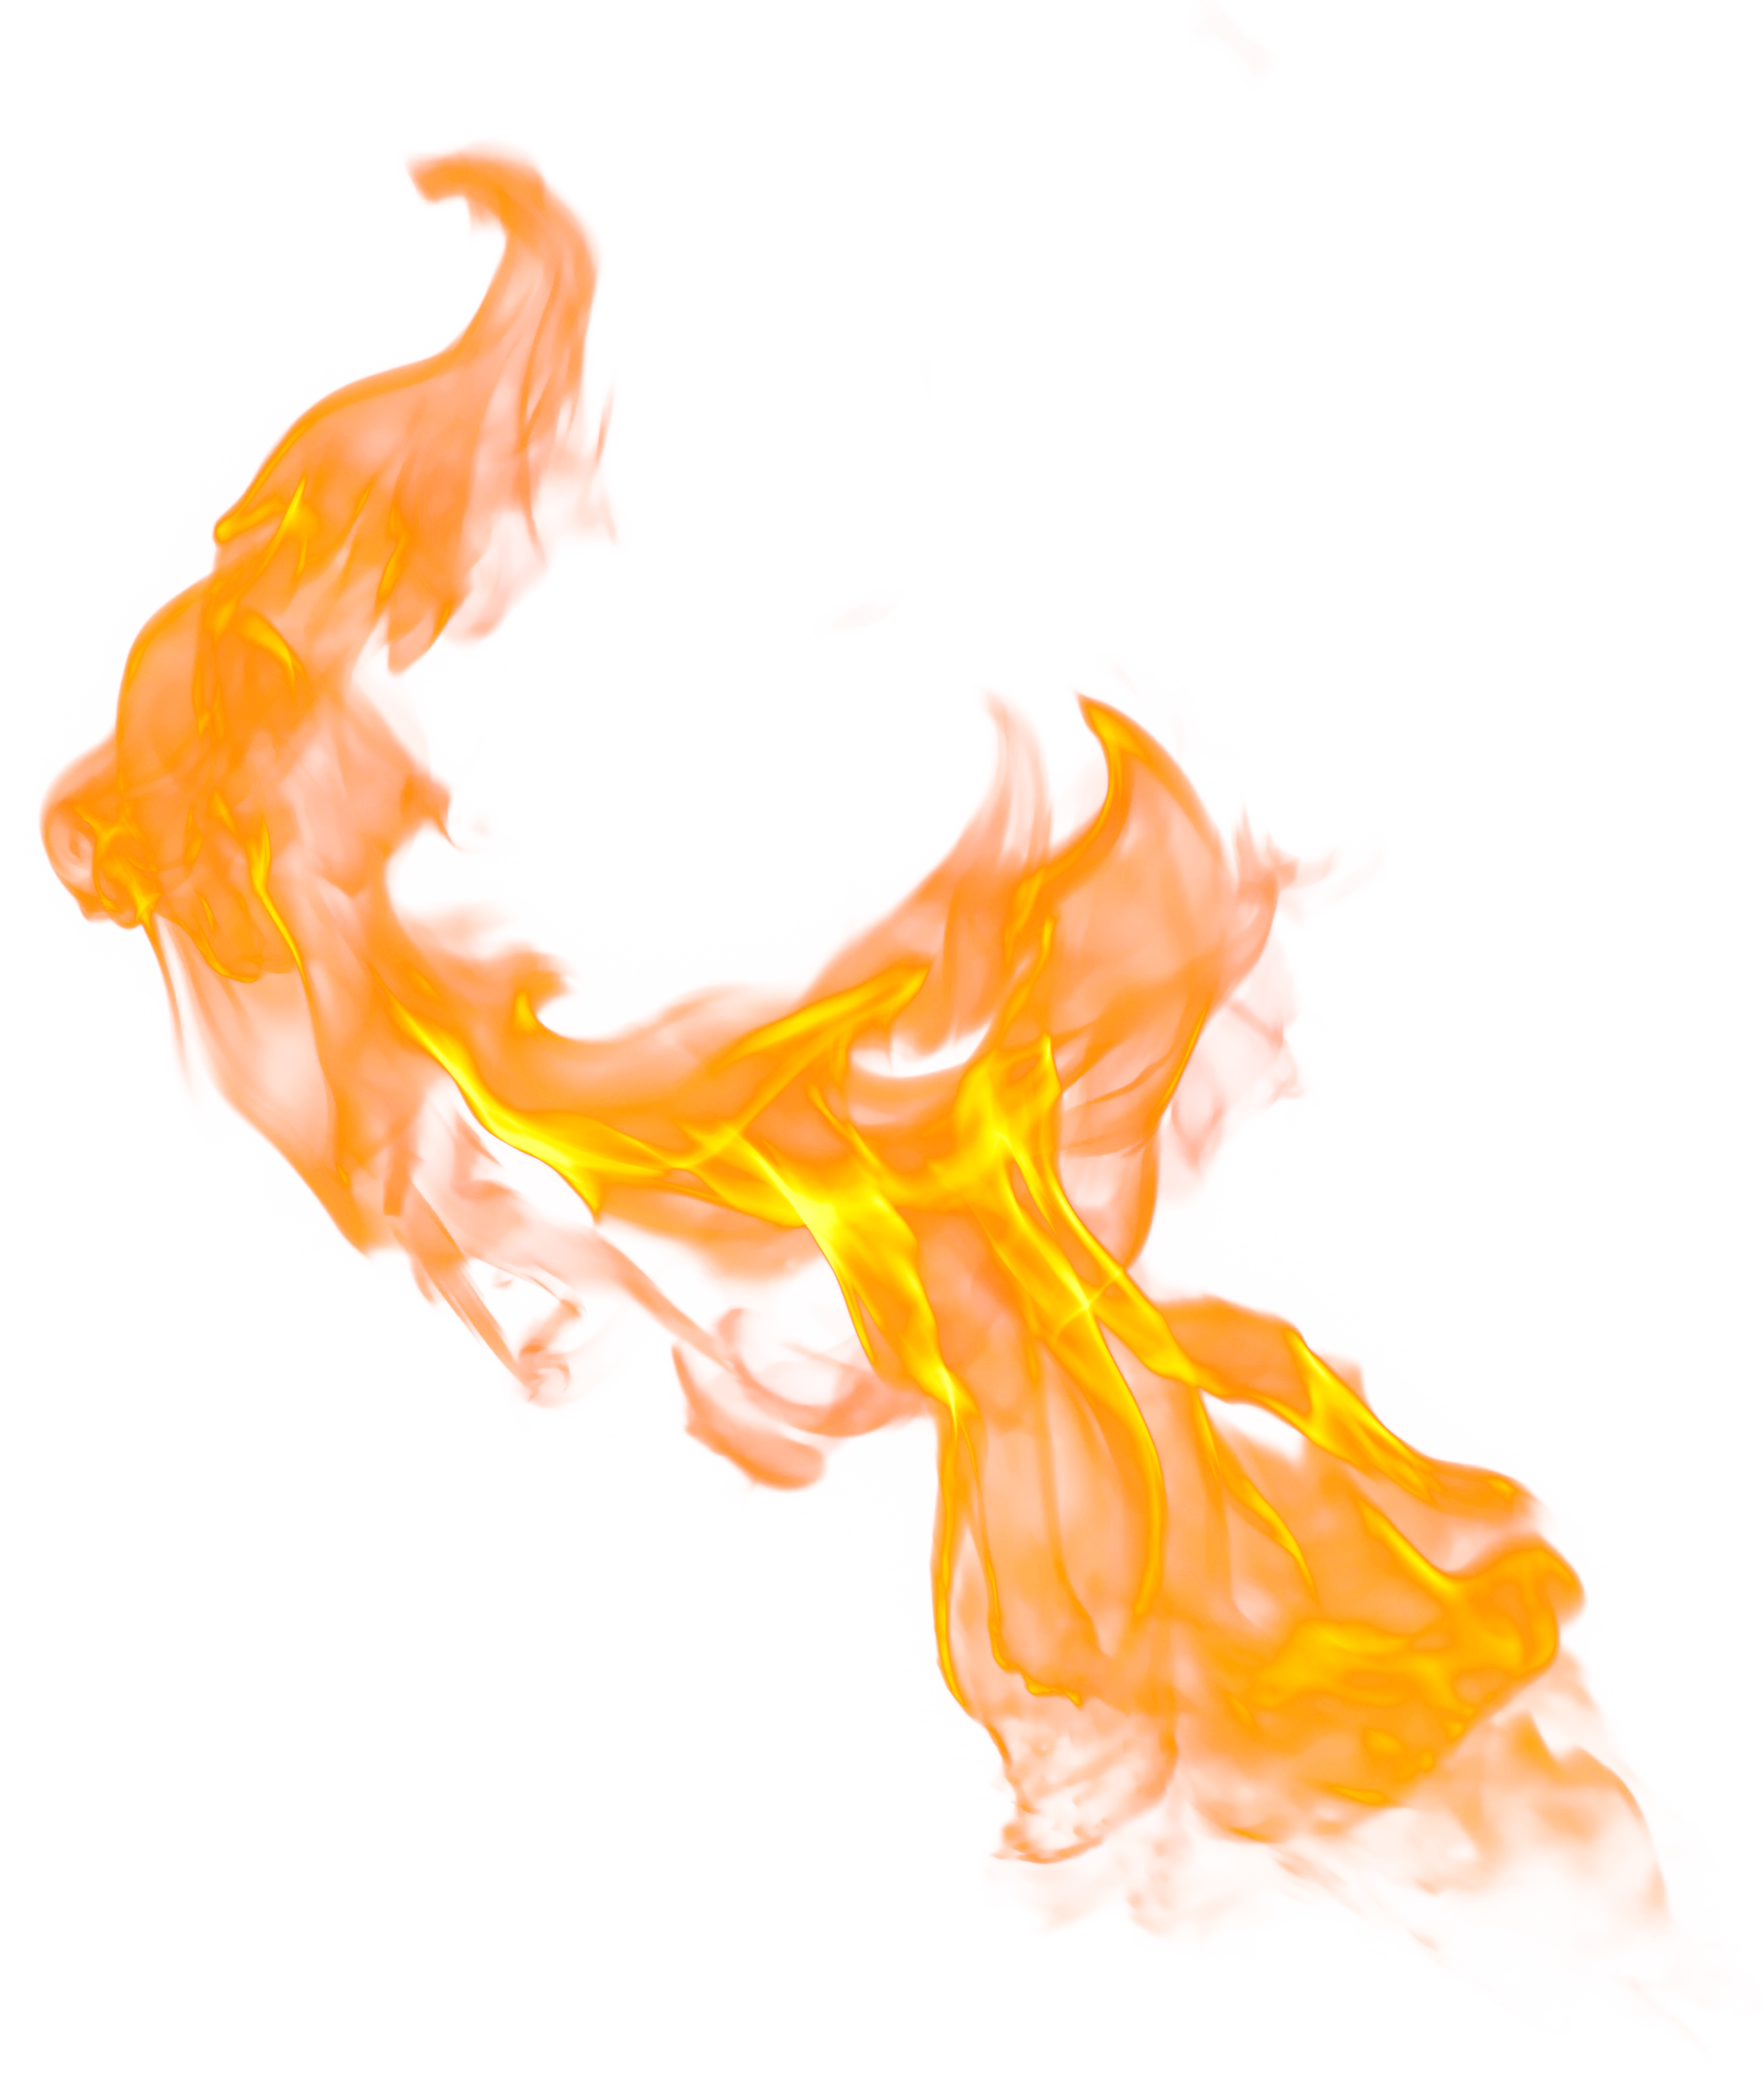 Fire Flame PNG Image Fire image, Fire art, Smoke art